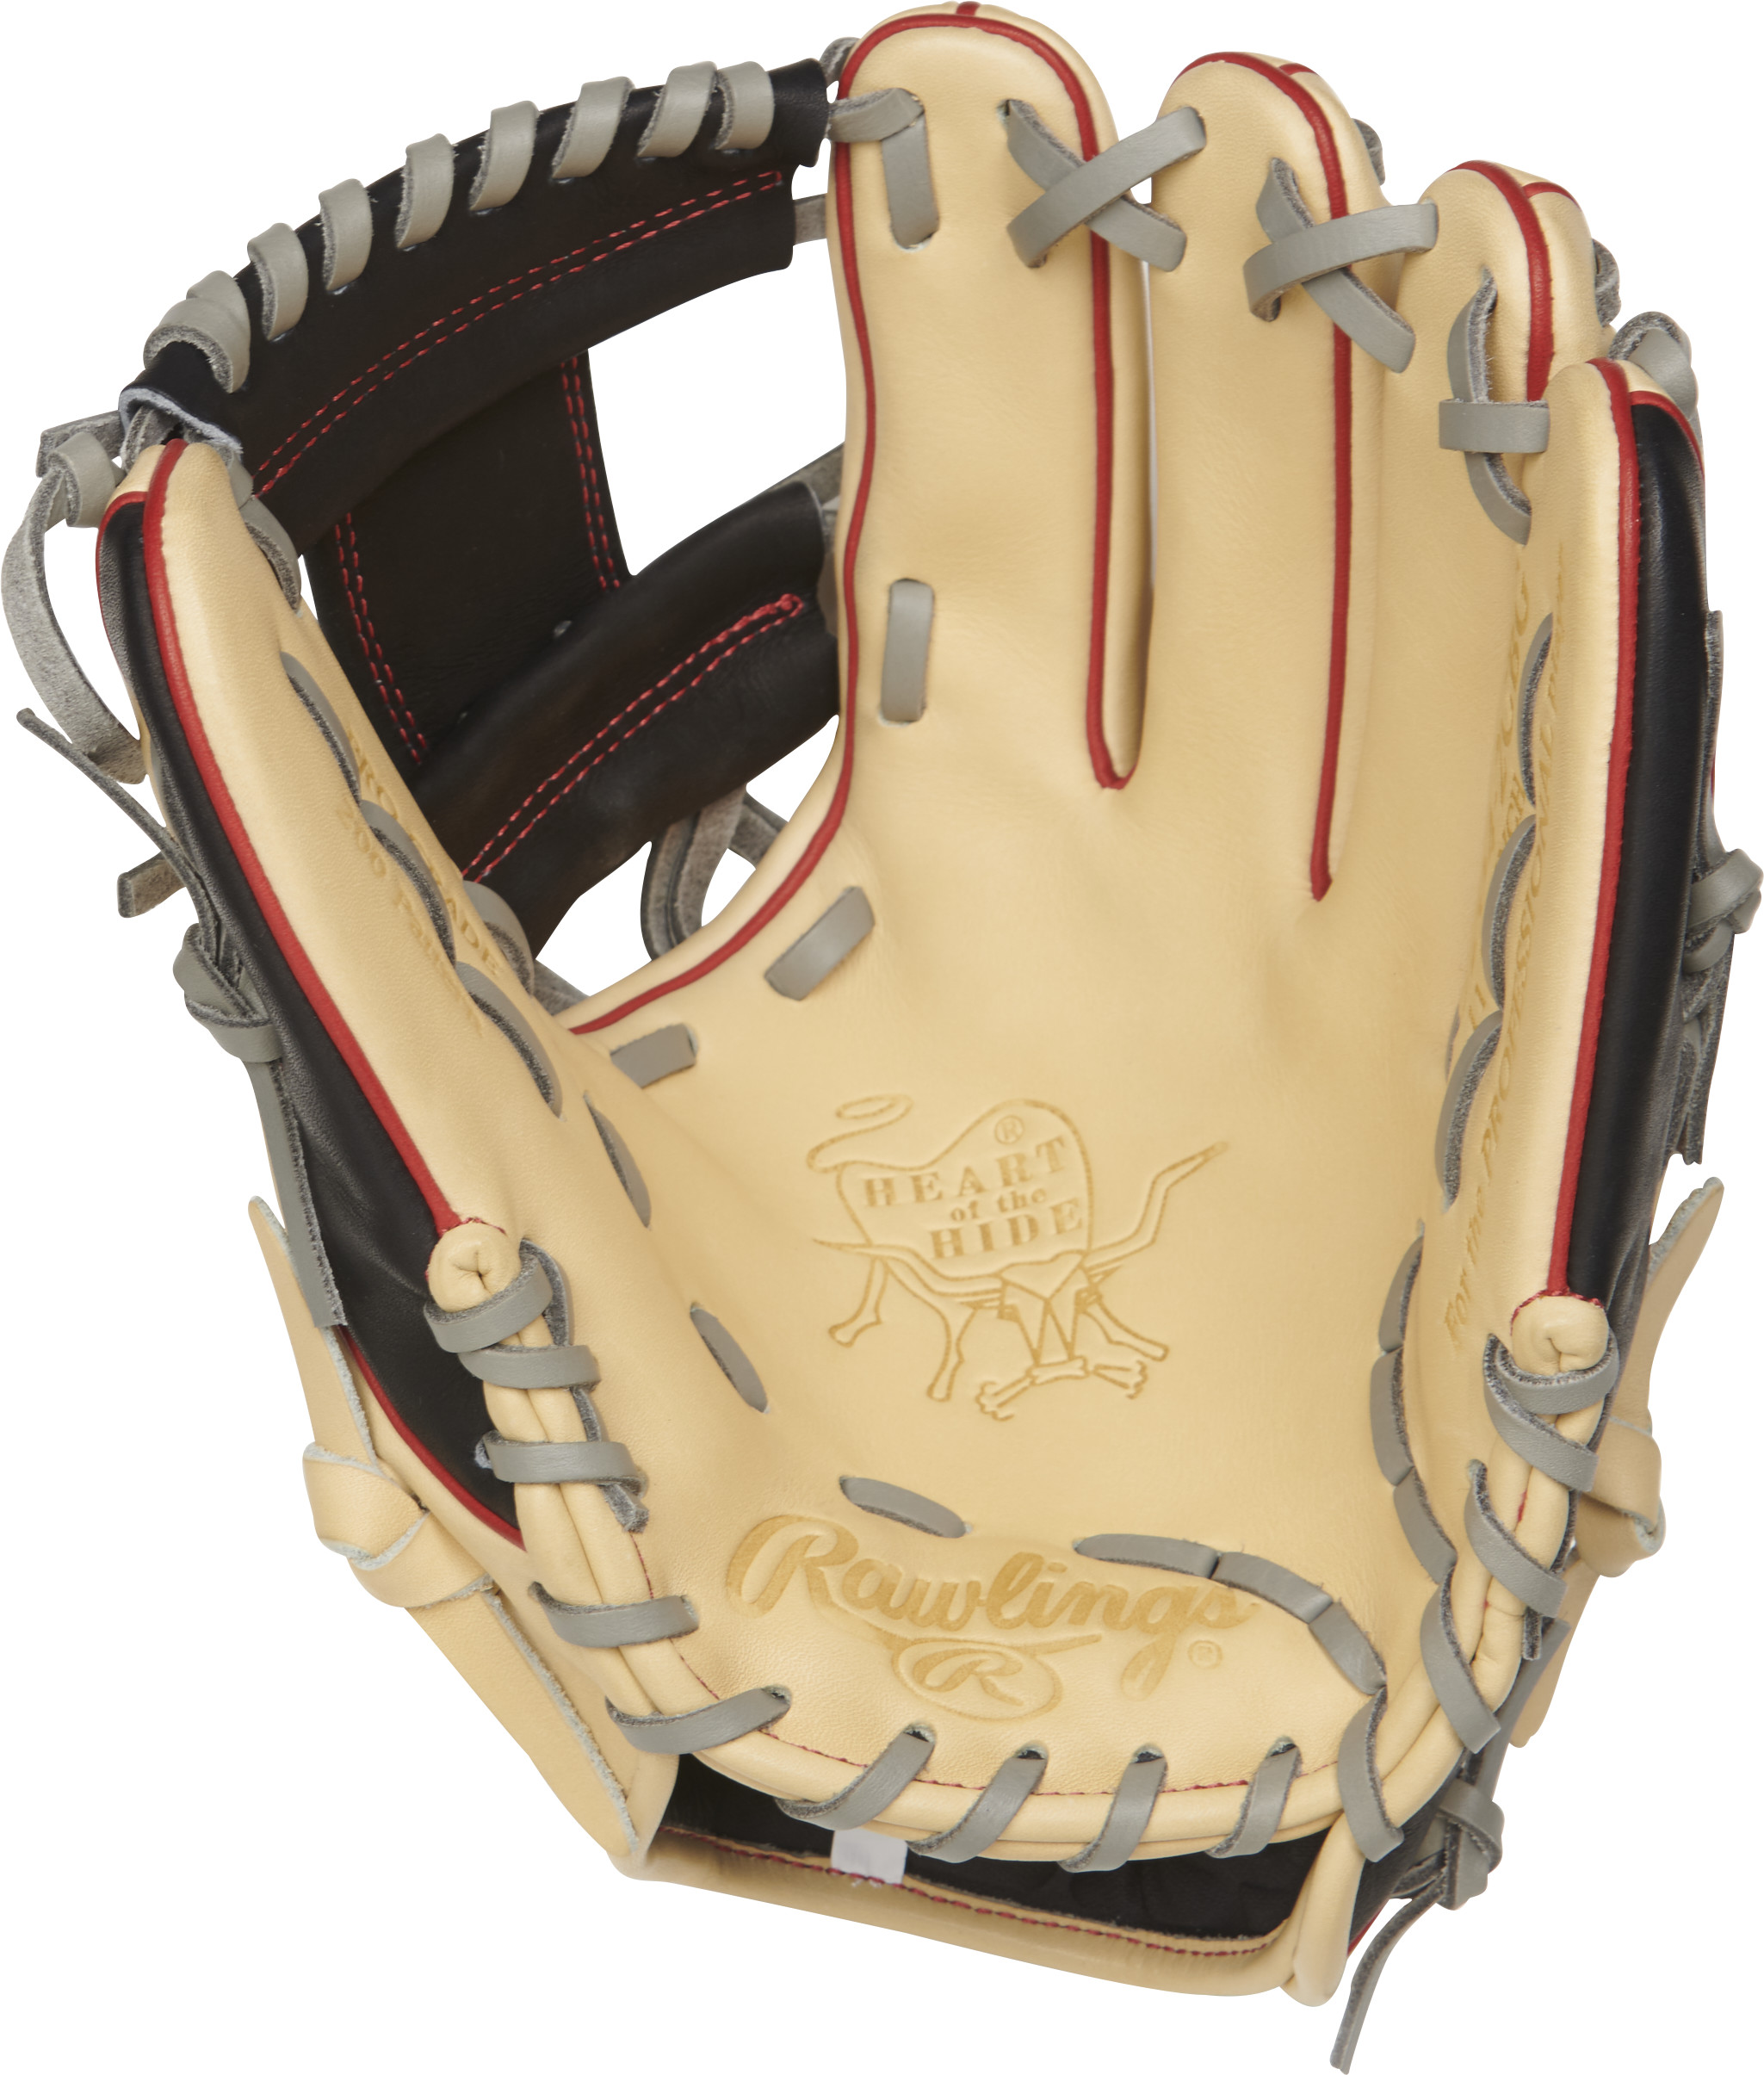 http://www.bestbatdeals.com/images/gloves/rawlings/PRO204-2CBG-1.jpg